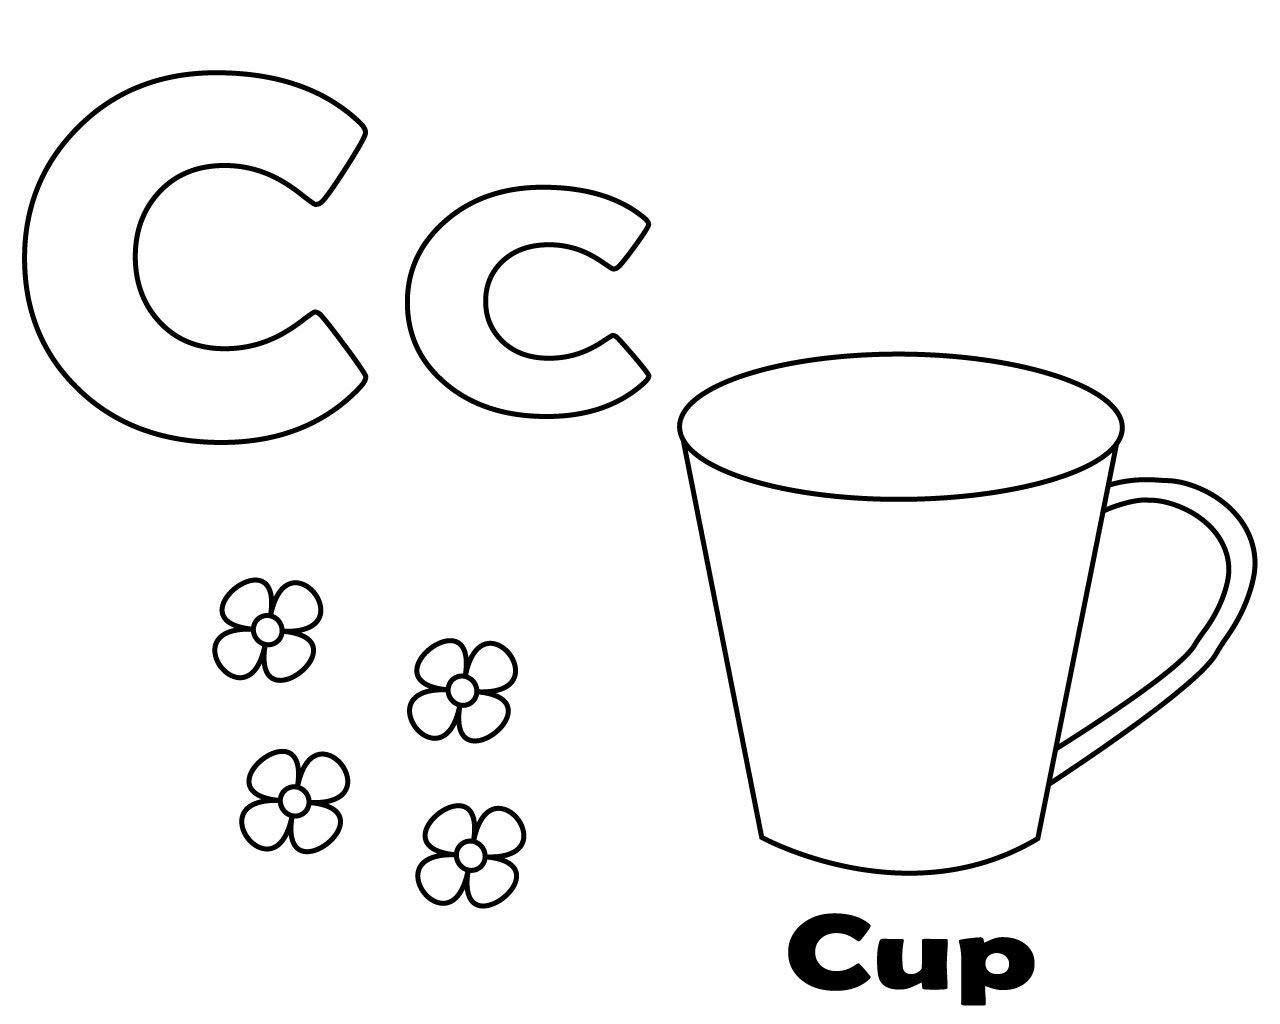 Letter C Coloring Pages For Toddlers Letter C Coloring Pages Free Coloring Pages Coloring Pages